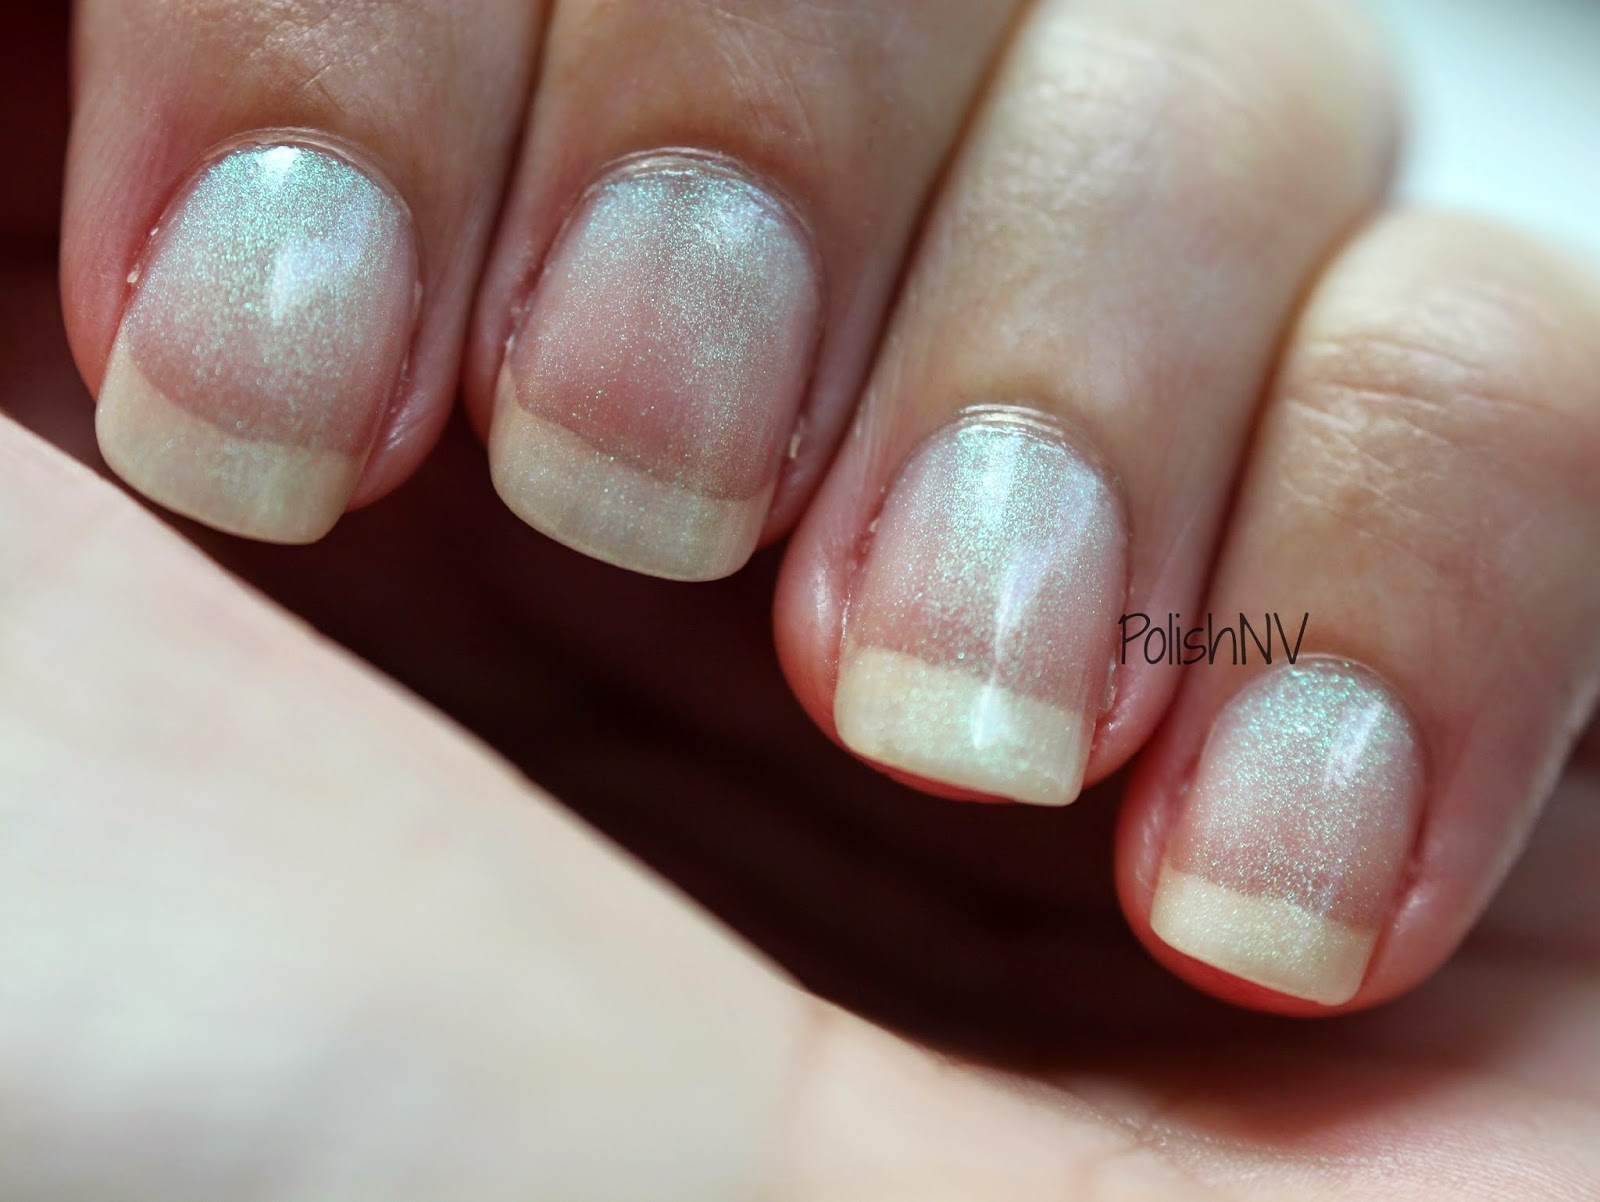 At Polish on Pearl, we provide nail and facial waxing services for our Denver neighbors, making sure every client leaves feeling beautiful inside and out! With a focus on cleanliness Learn more about Polish on Pearl, Opens a popup3/5(14).